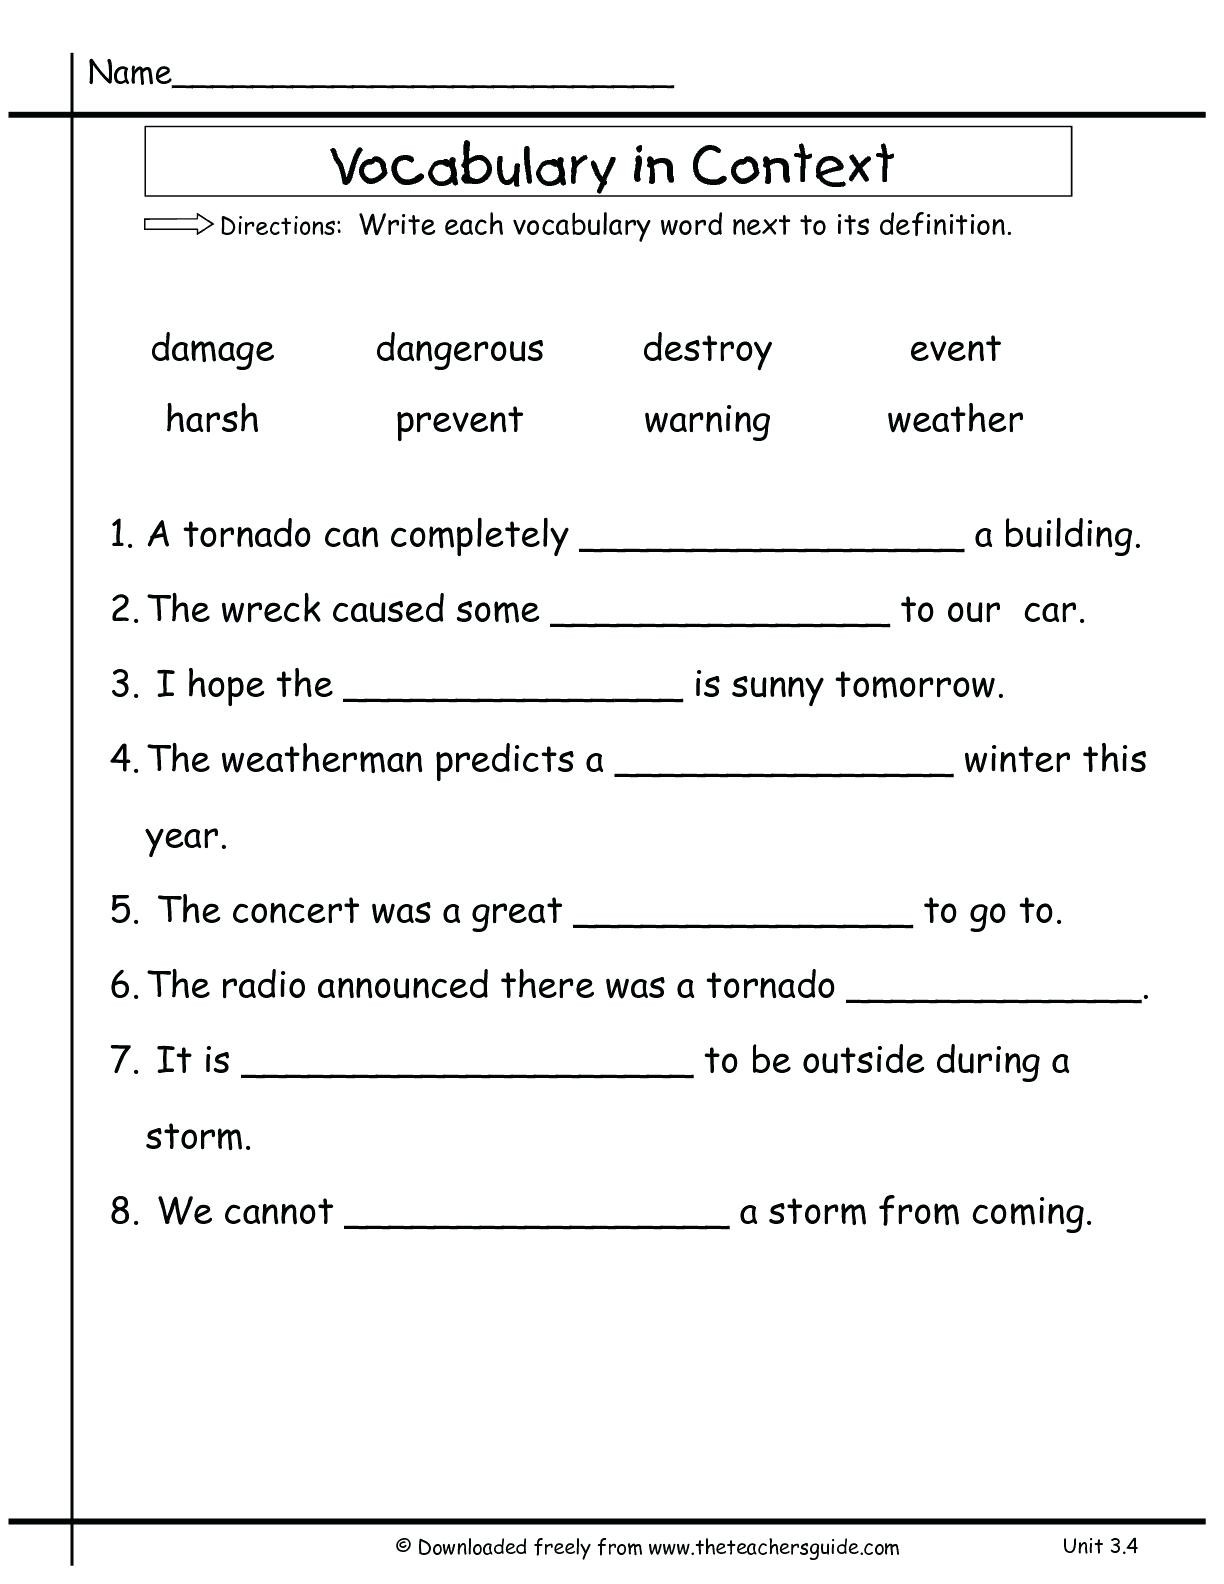 4th Grade Vocabulary Worksheets 3rd Grade Vocabulary Worksheets for Educations Free Math